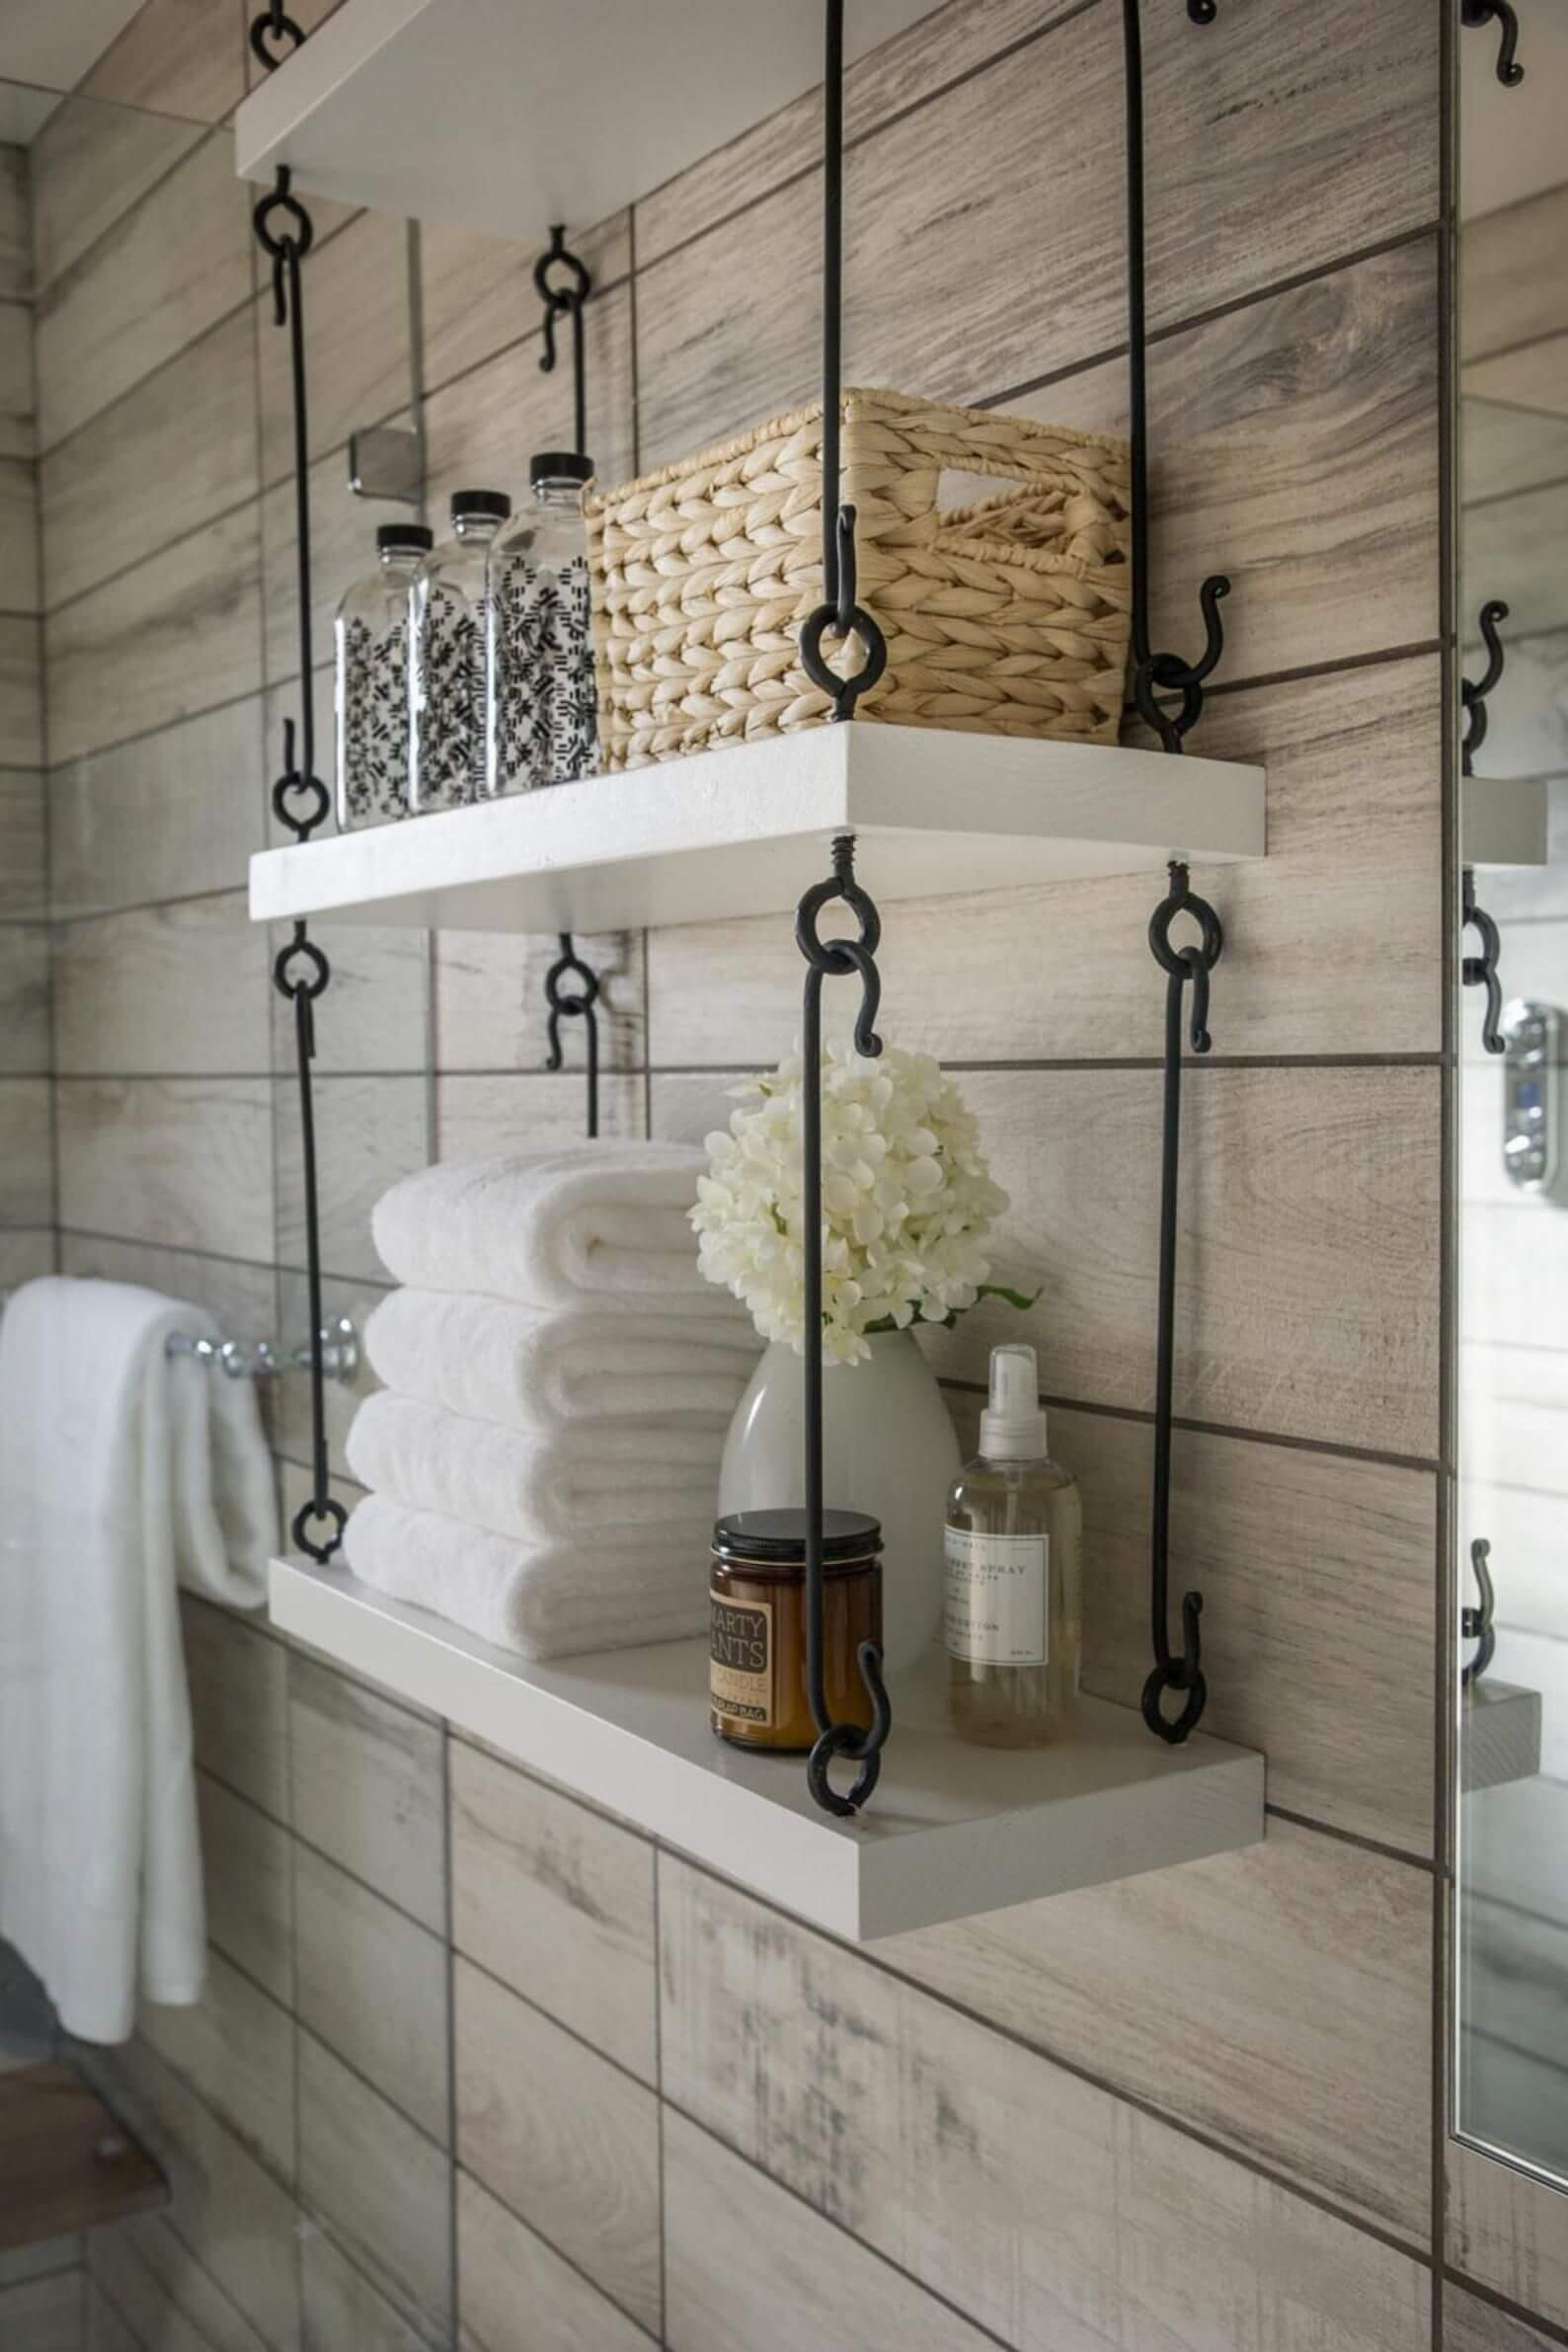 Charmant Wall Mounted Bathroom Shelf